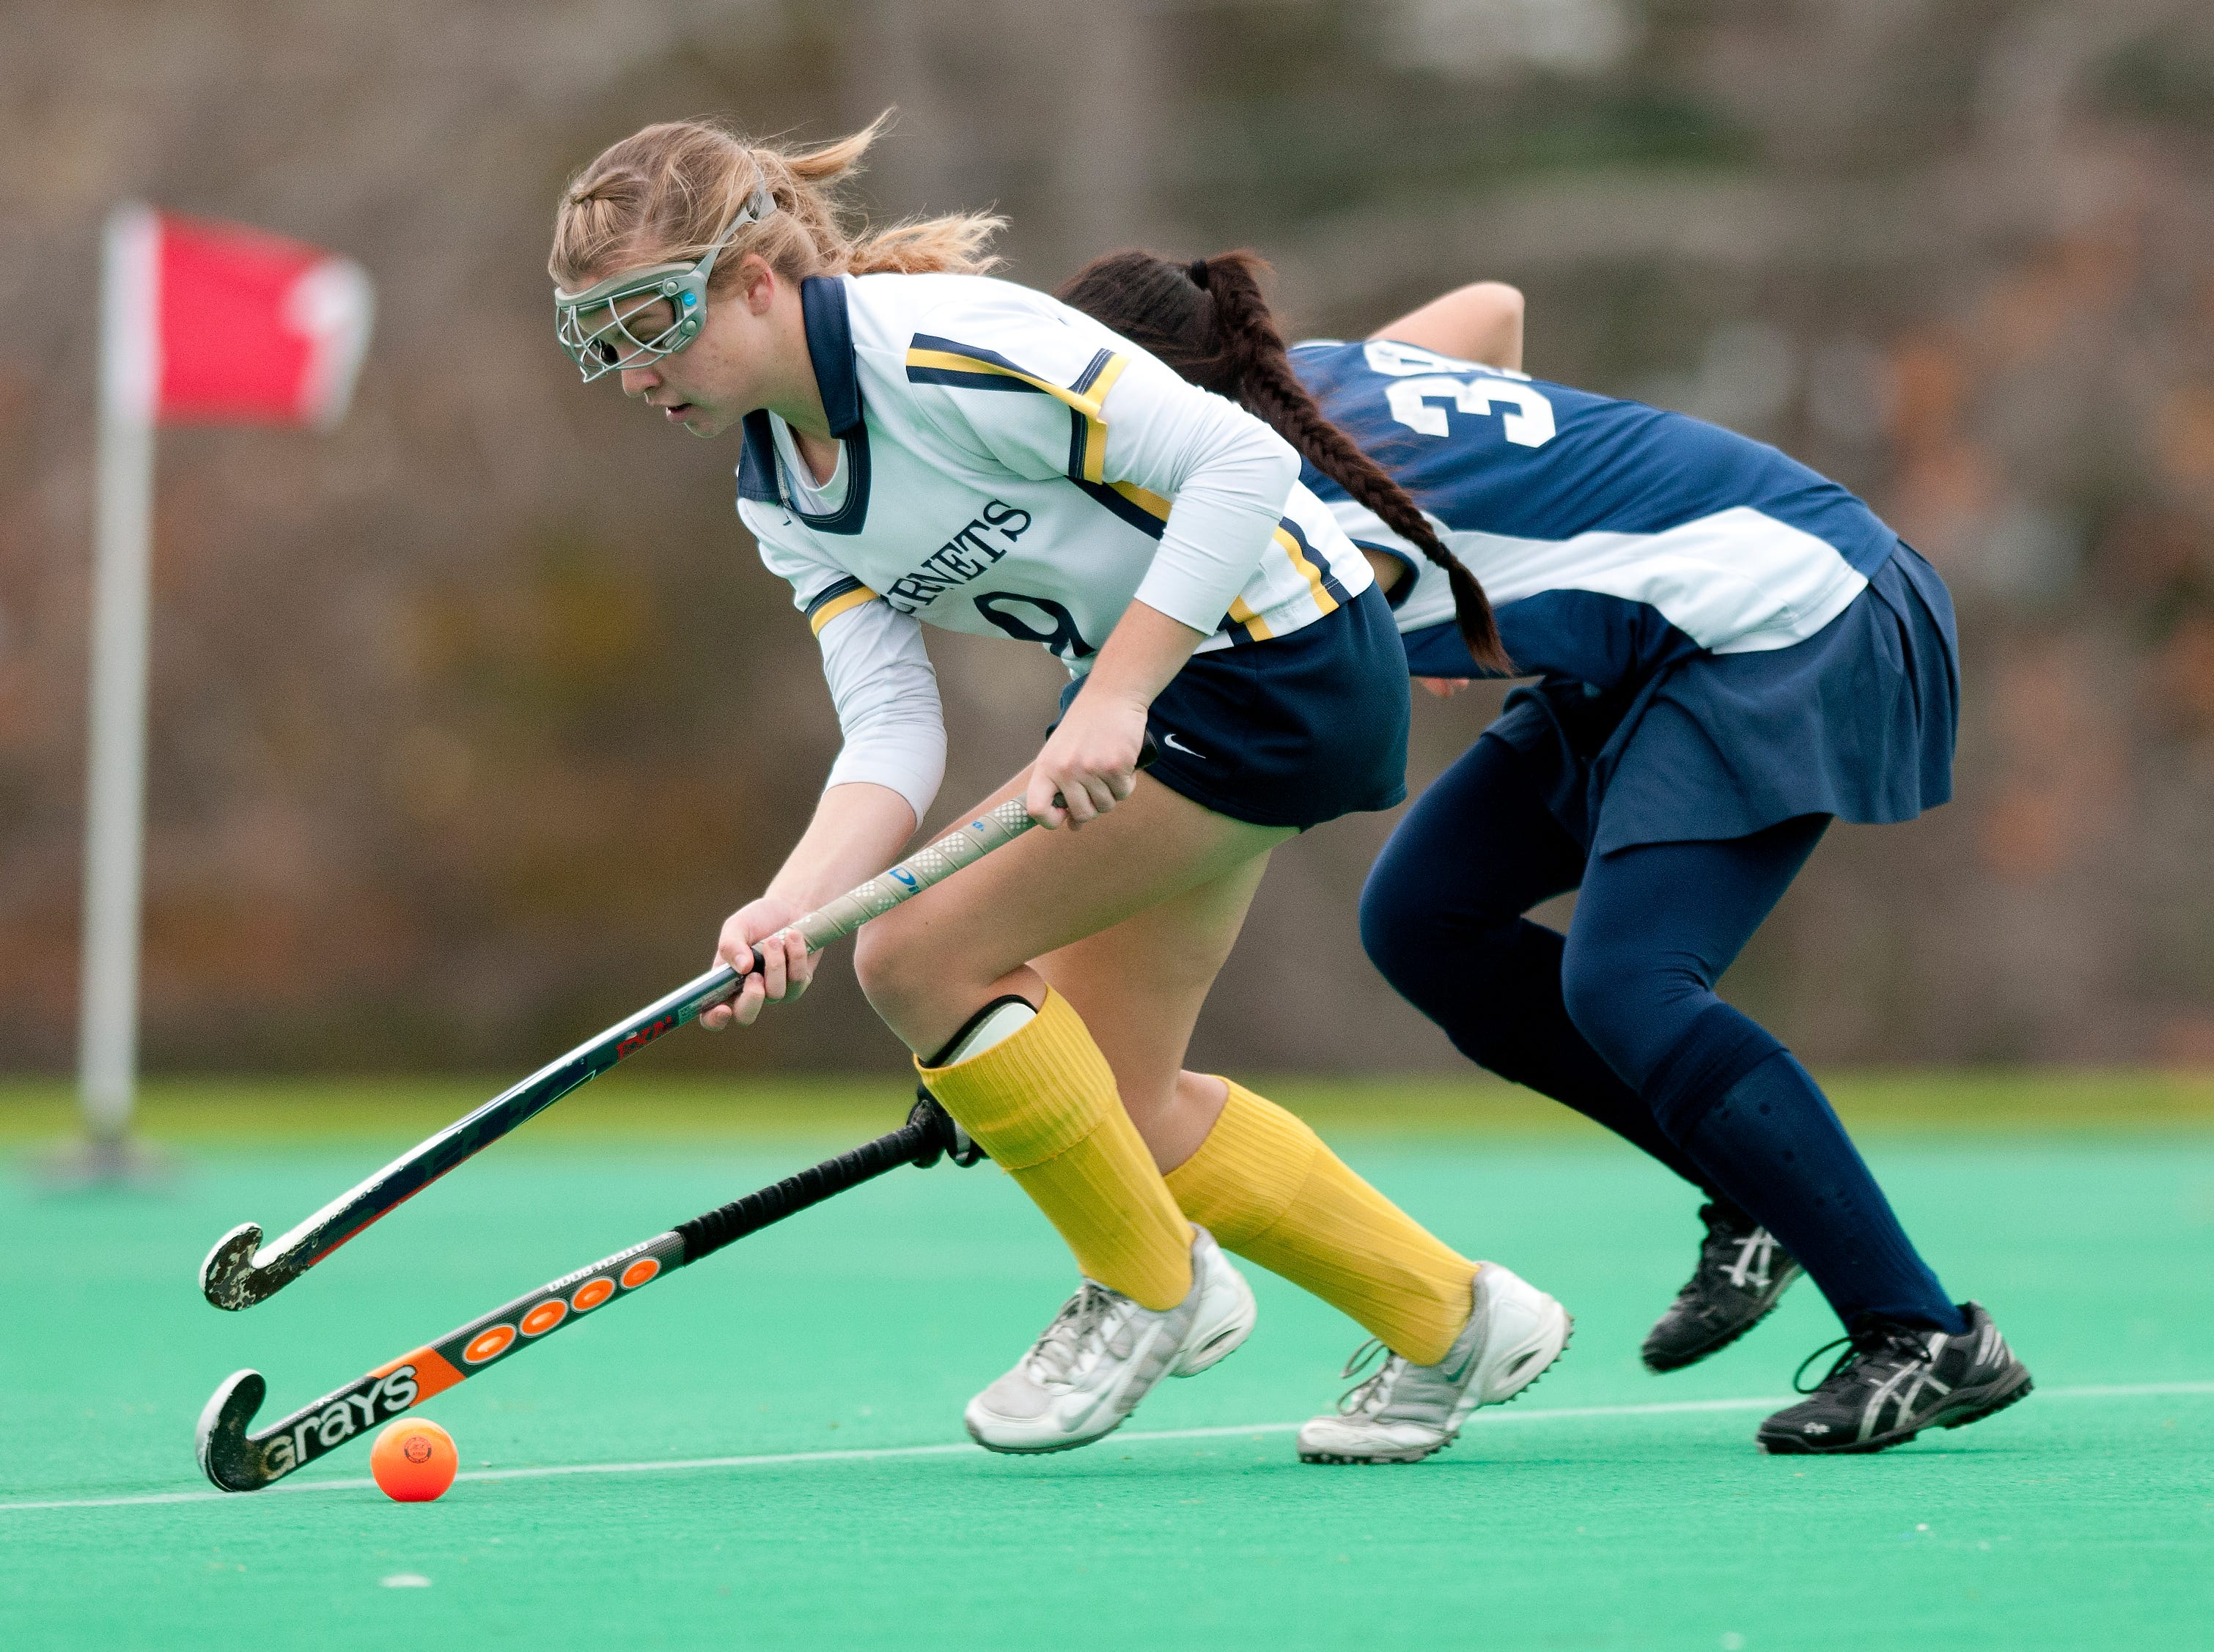 Essex's Kathleen Young, left, runs past Hartford's Jenna Yee with the ball during the Division I field hockey state championship between Hartford and Essex at Moulton/Winder field last season.